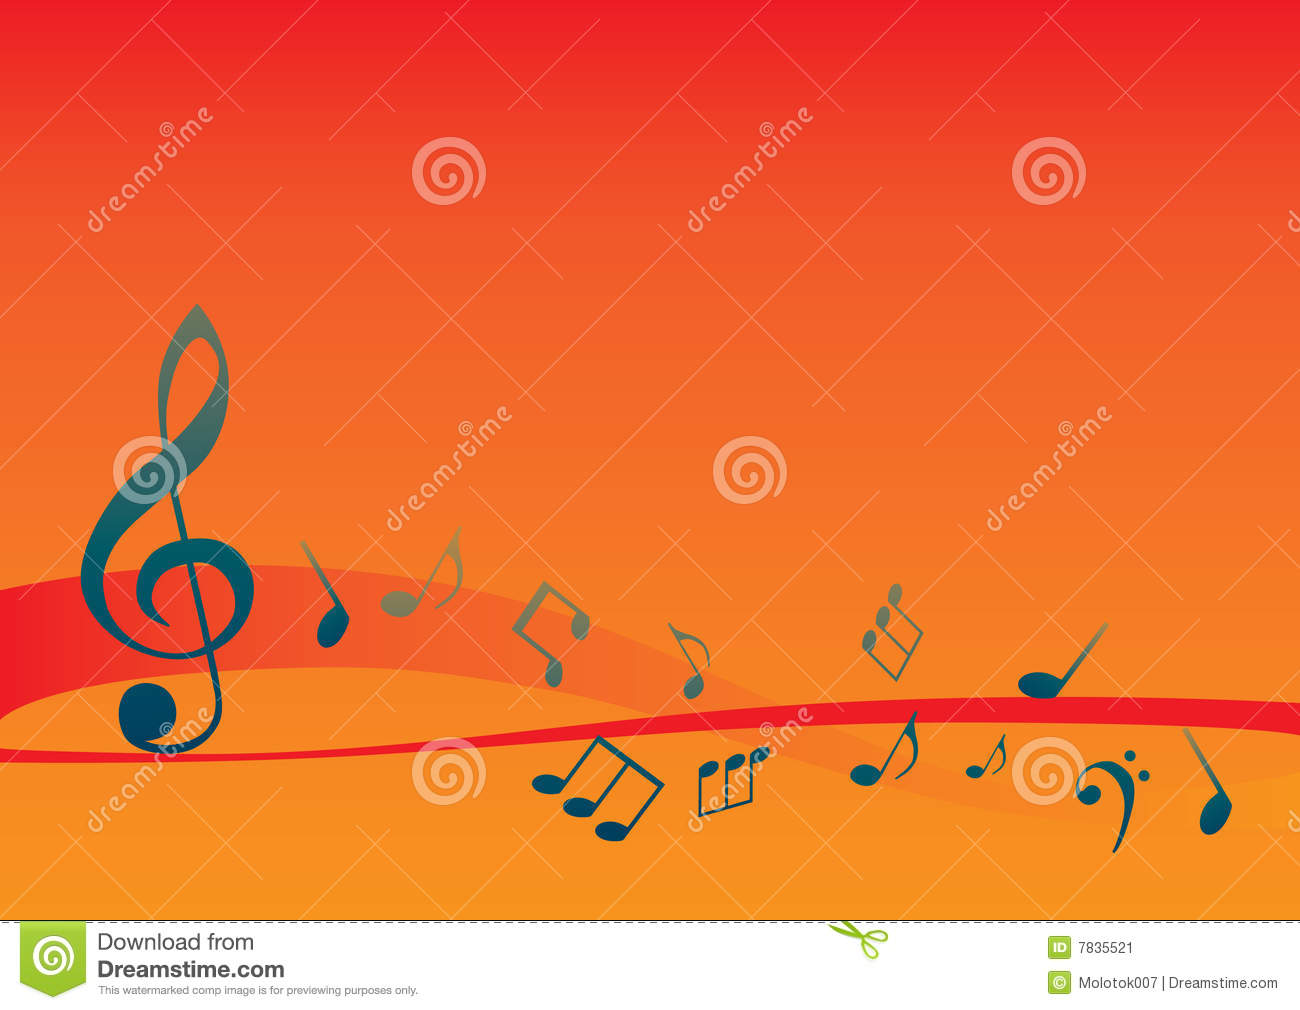 Stock image abstract musical background with music notes